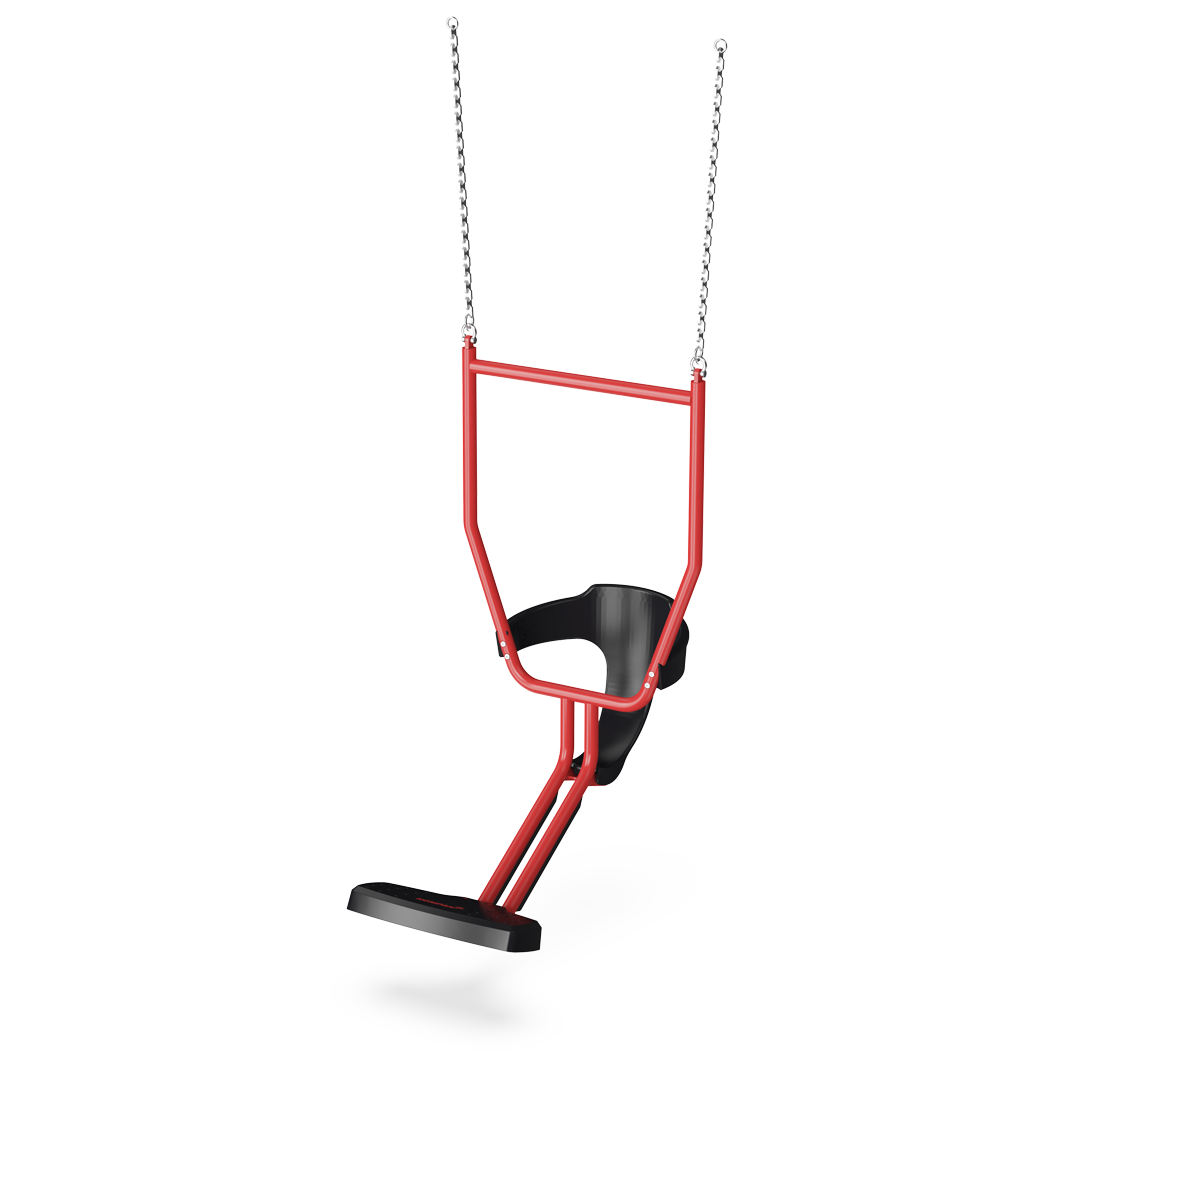 Traditional Swing For Living Room: You&Me Swing Seat From KOMPAN